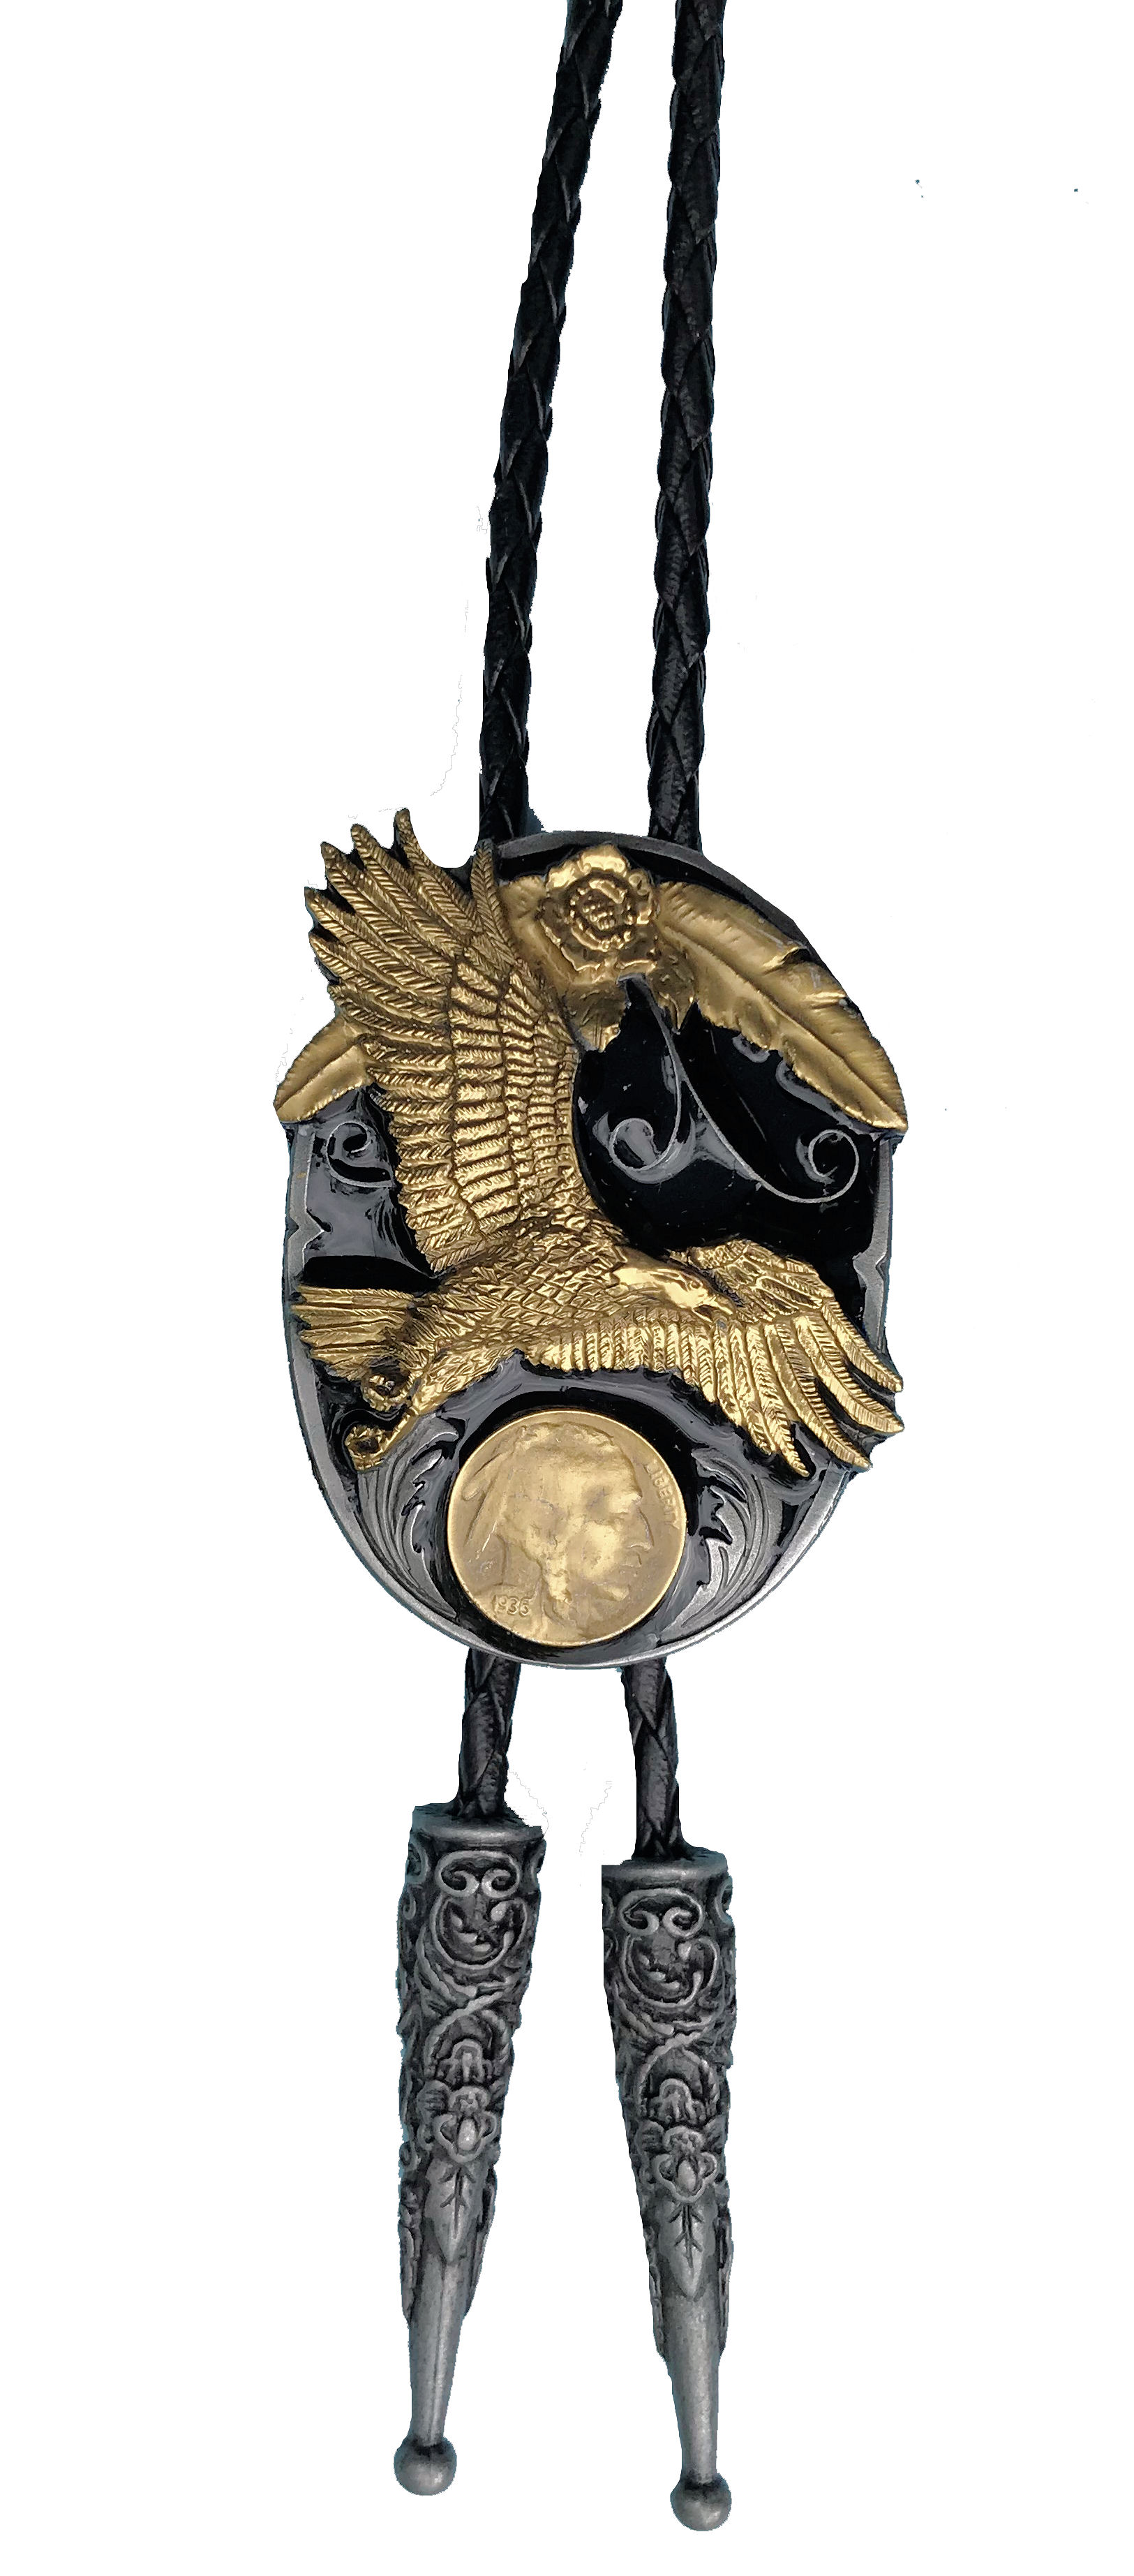 Eagle (Liberty Coin) Black & Gold Edition Bolo Tie